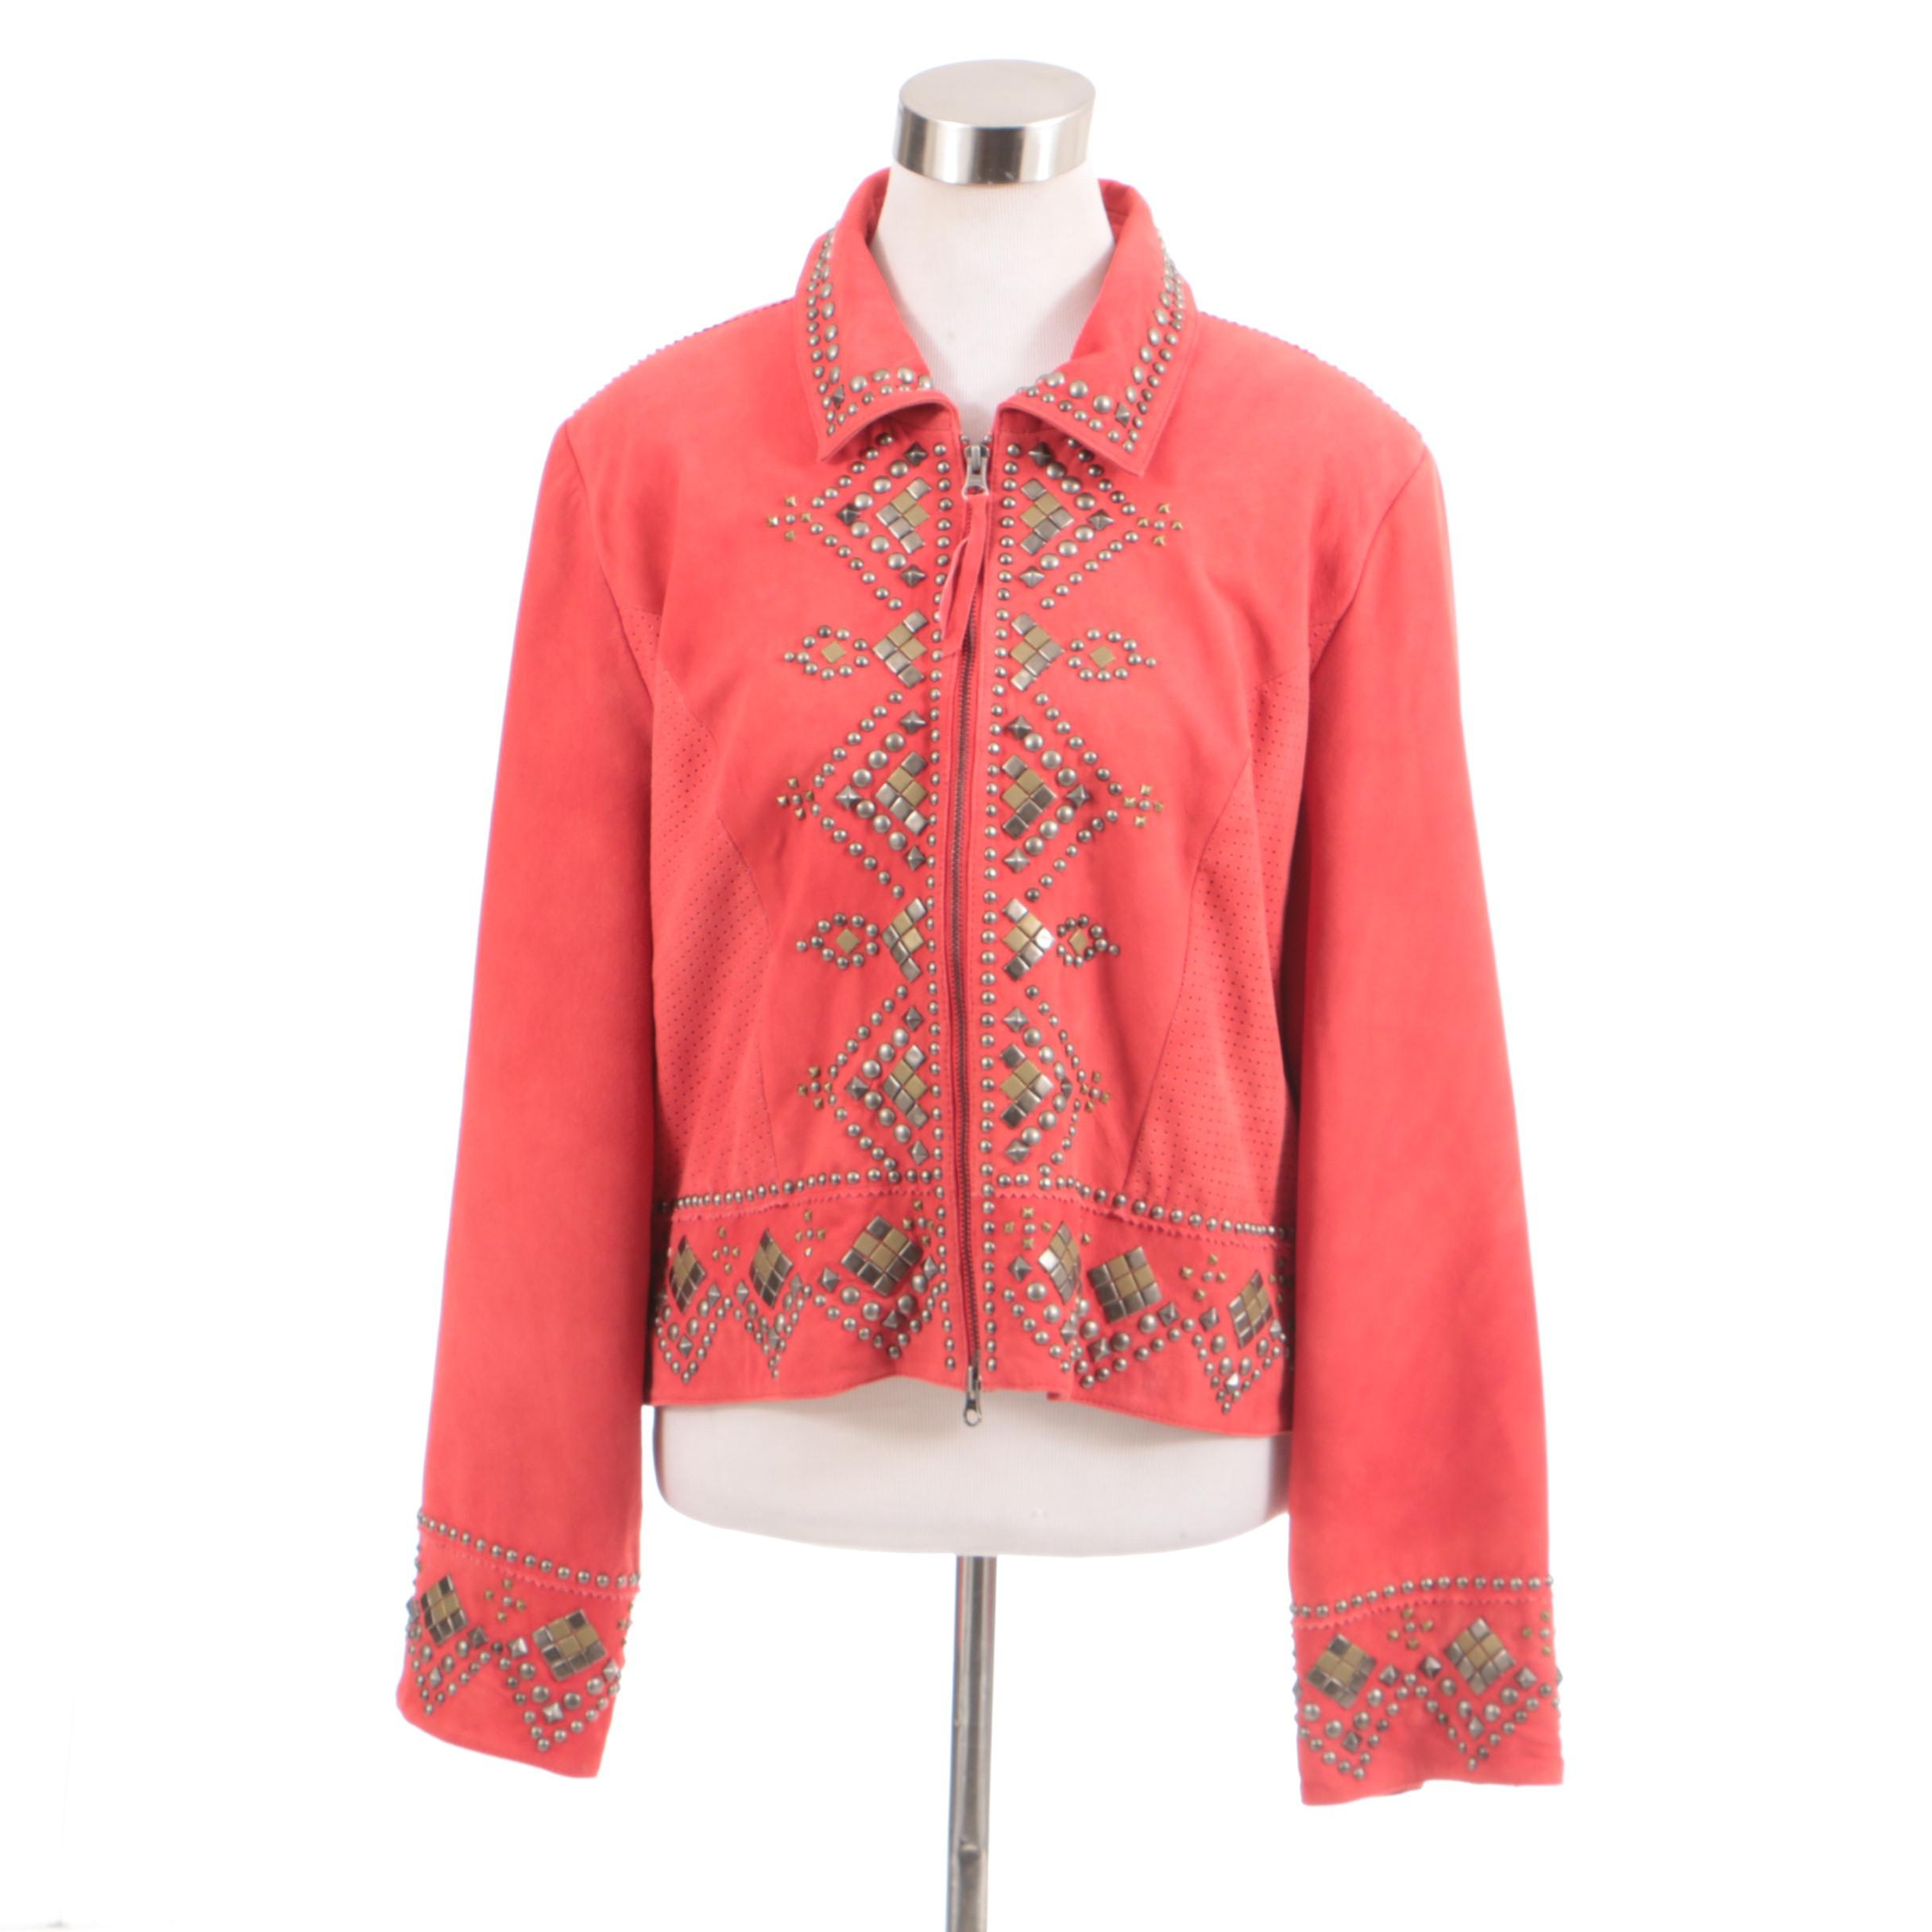 Double D Ranch of Yoakum, Texas Coral Suede Leather Jacket